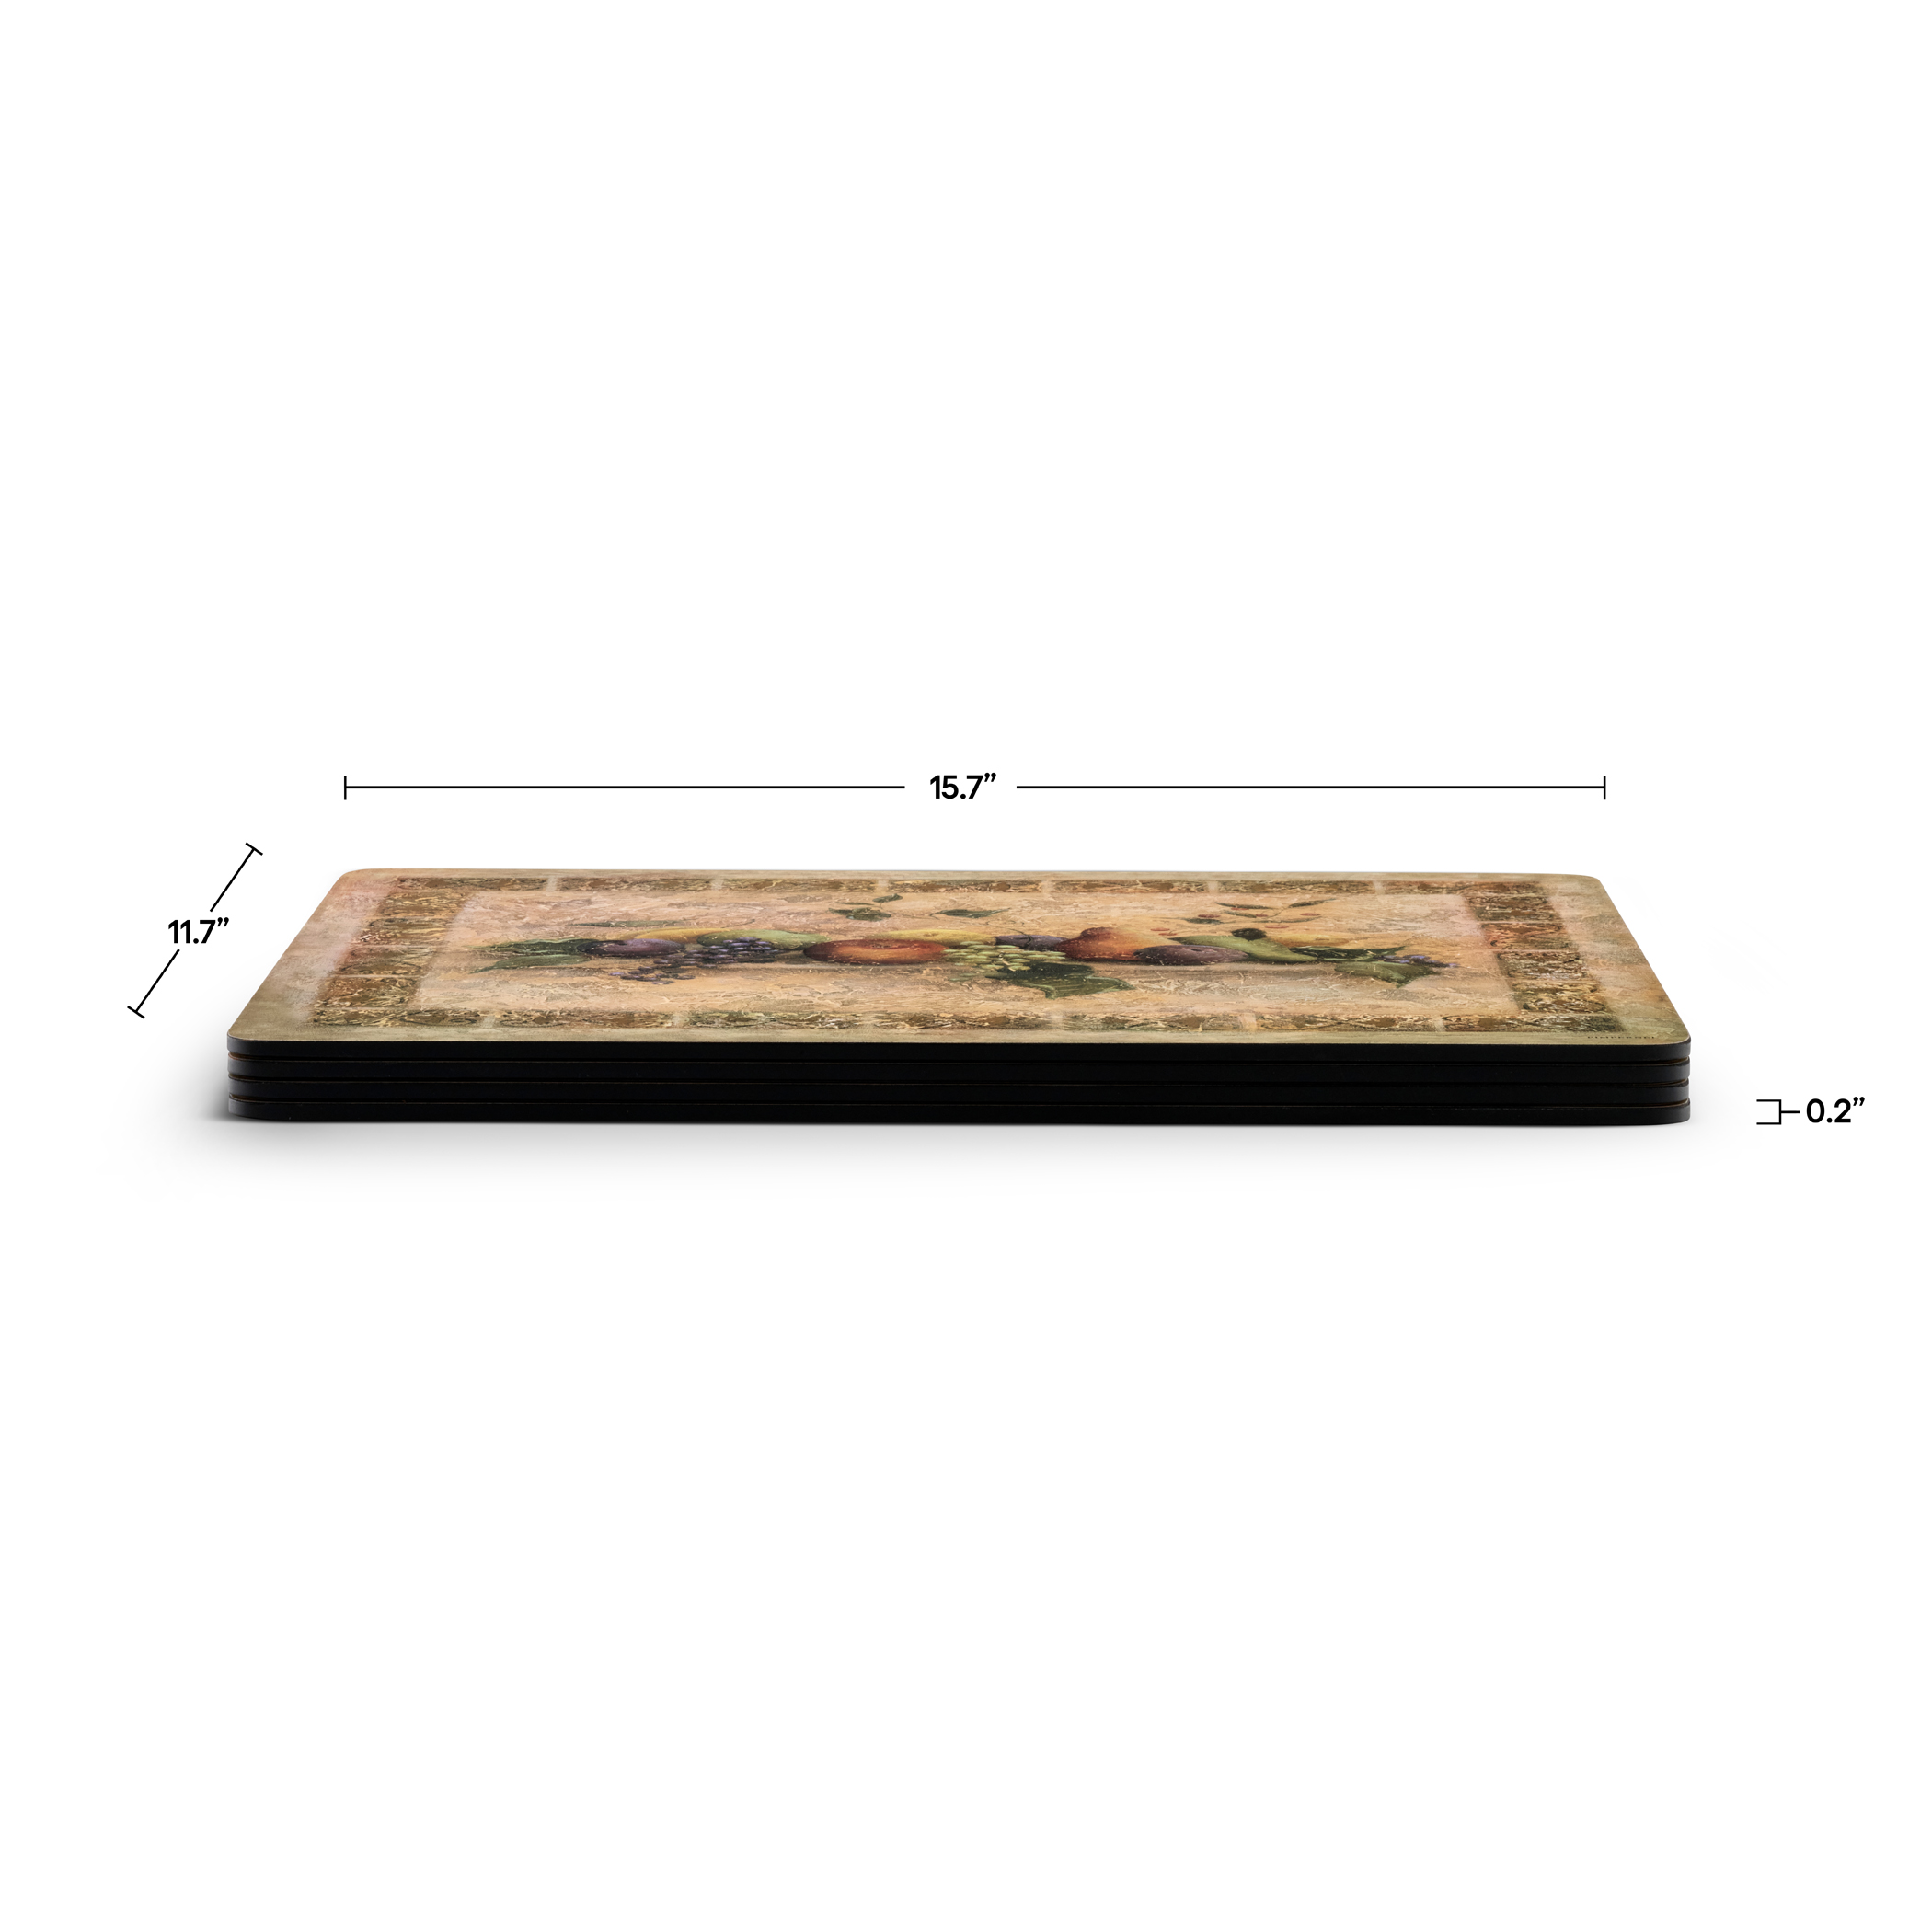 Pimpernel Tuscan Palette Placemats Set of 4 image number 3